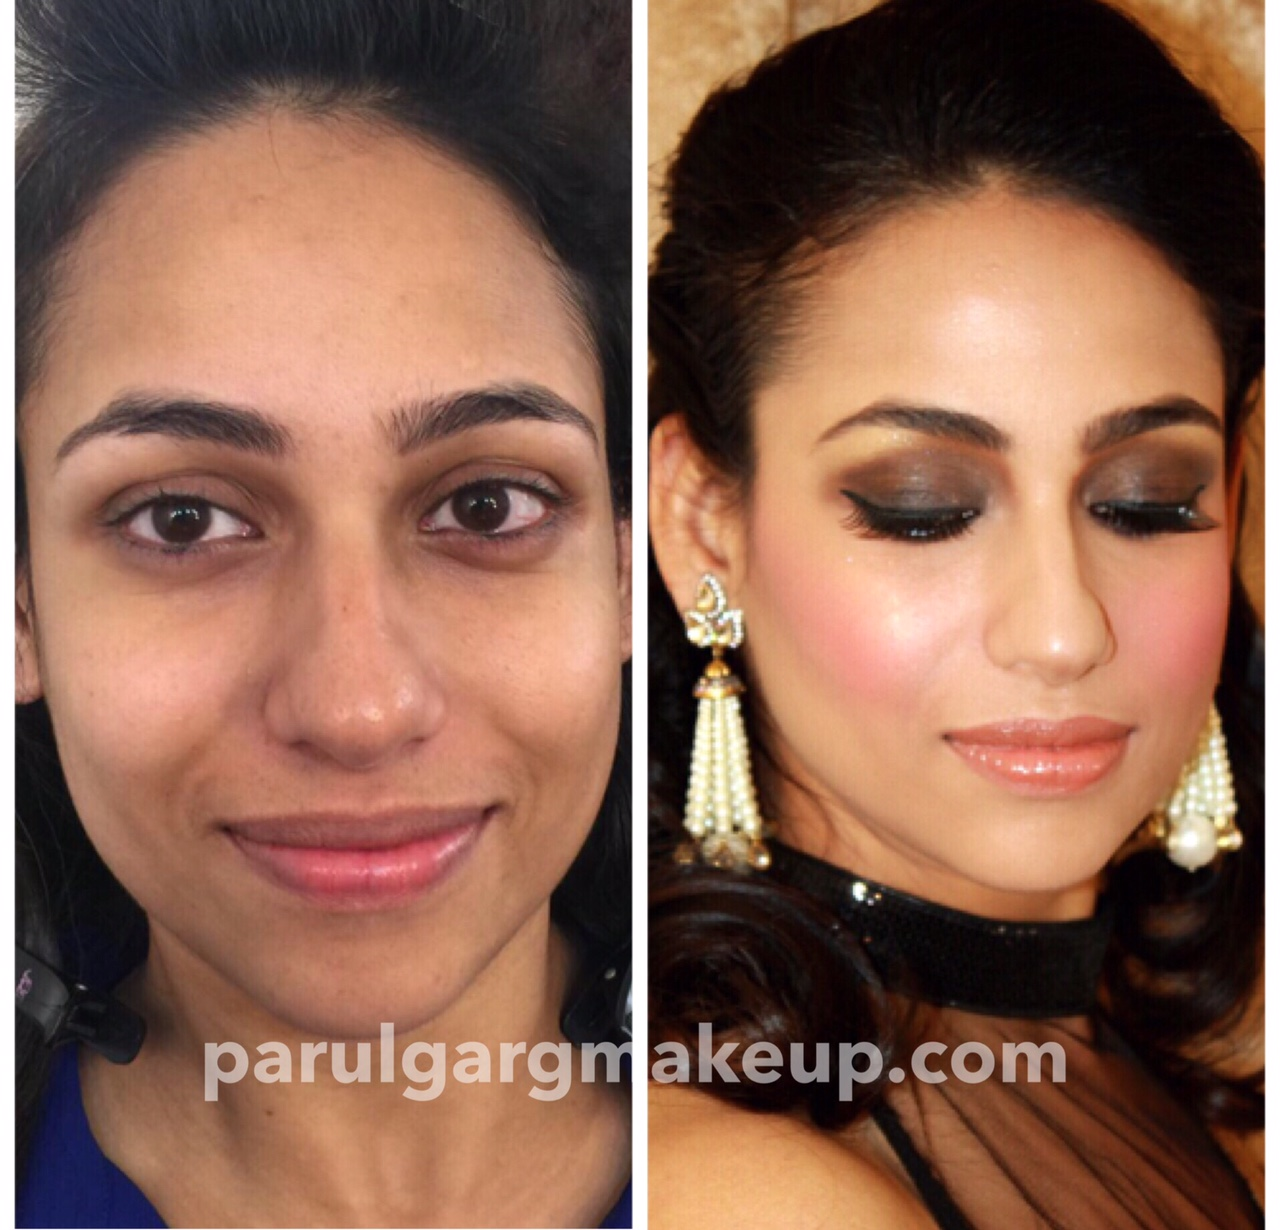 Party Makeupwith Airbrush